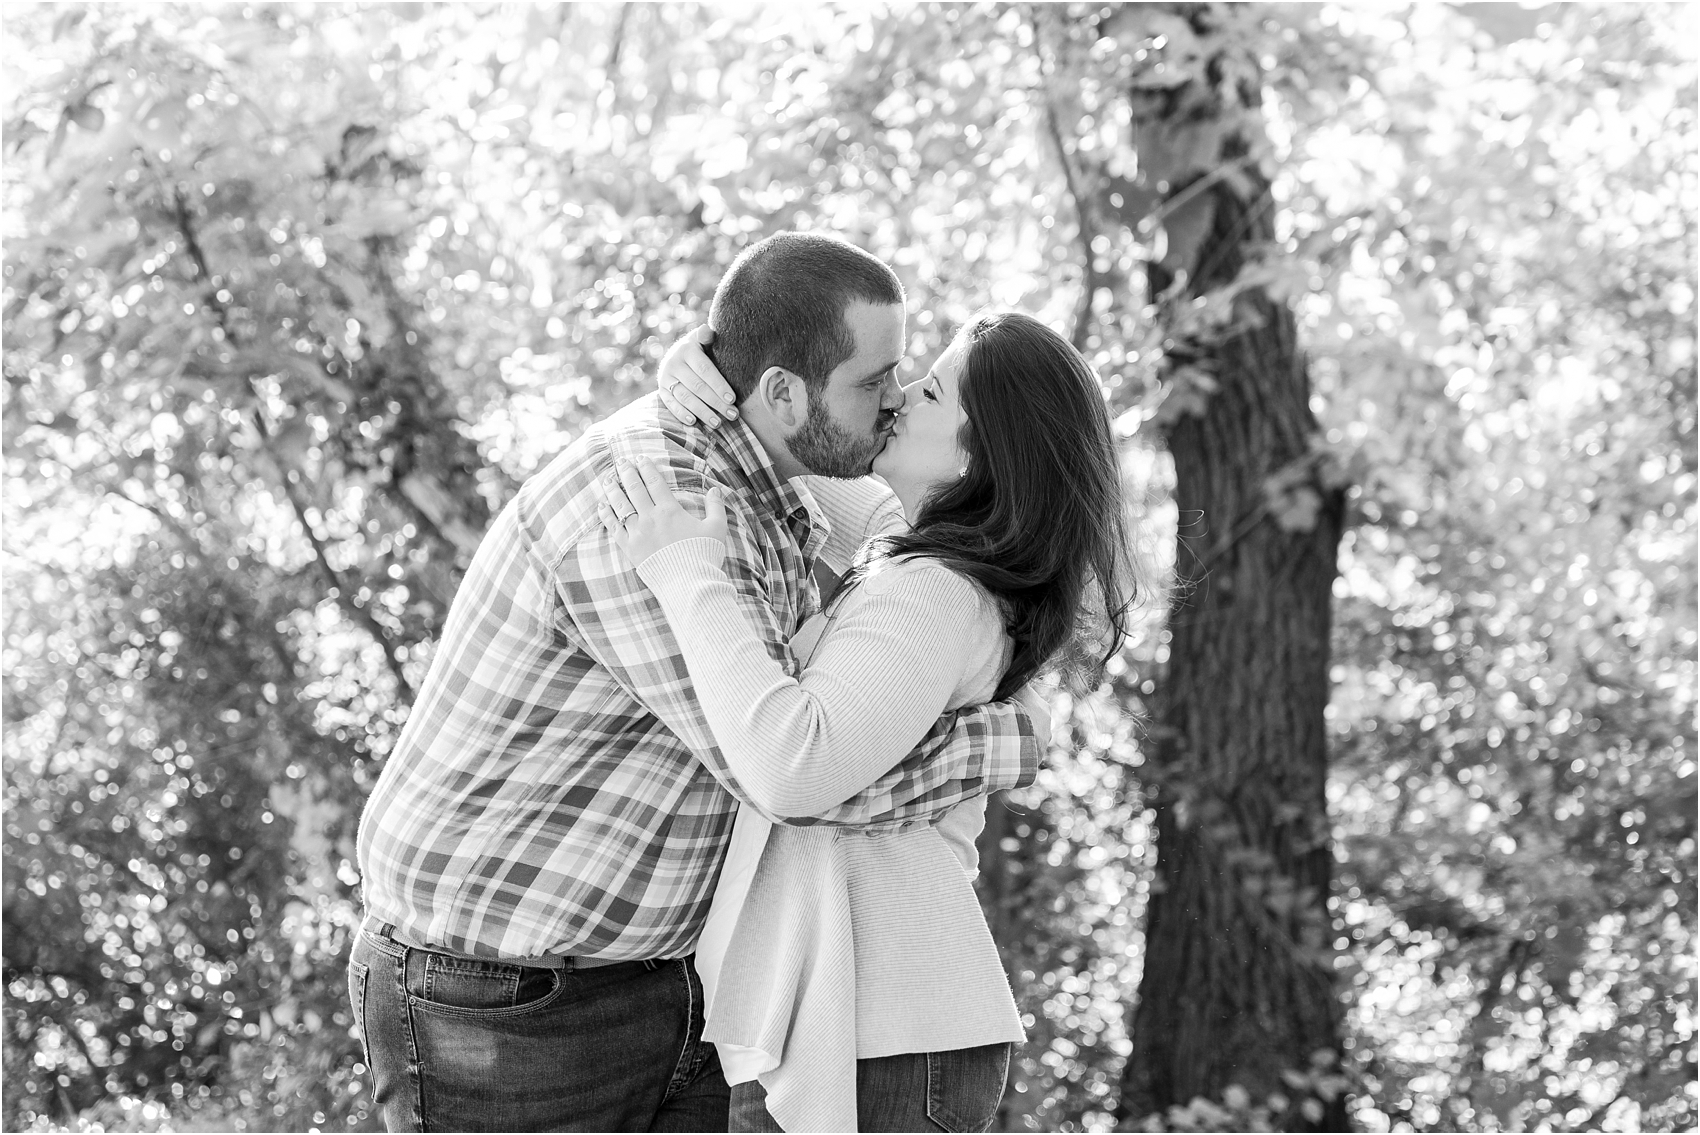 candid-romantic-summer-engagement-photos-at-hidden-lake-gardens-and-black-fire-winery-in-tipton-mi-by-courtney-carolyn-photography_0020.jpg